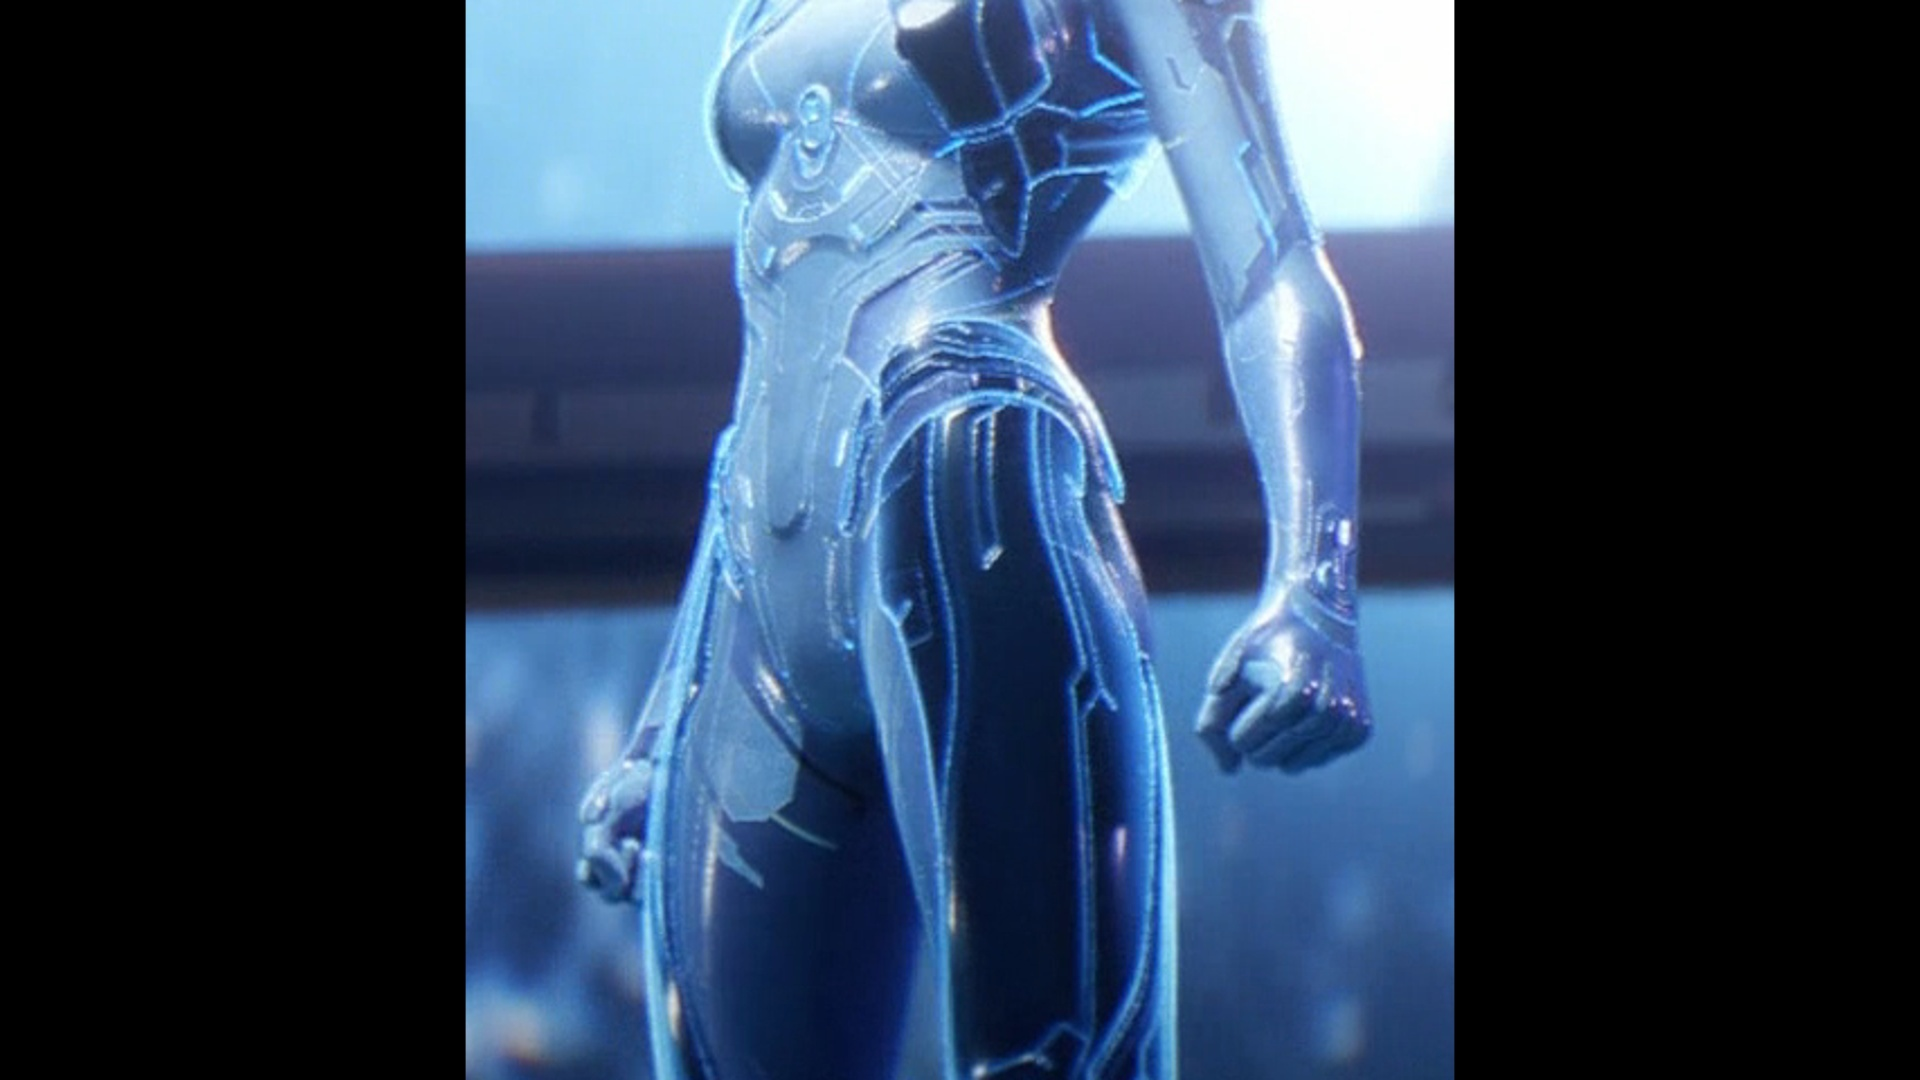 Halo 5 Cortana Reference Pics Halo Costume And Prop Maker